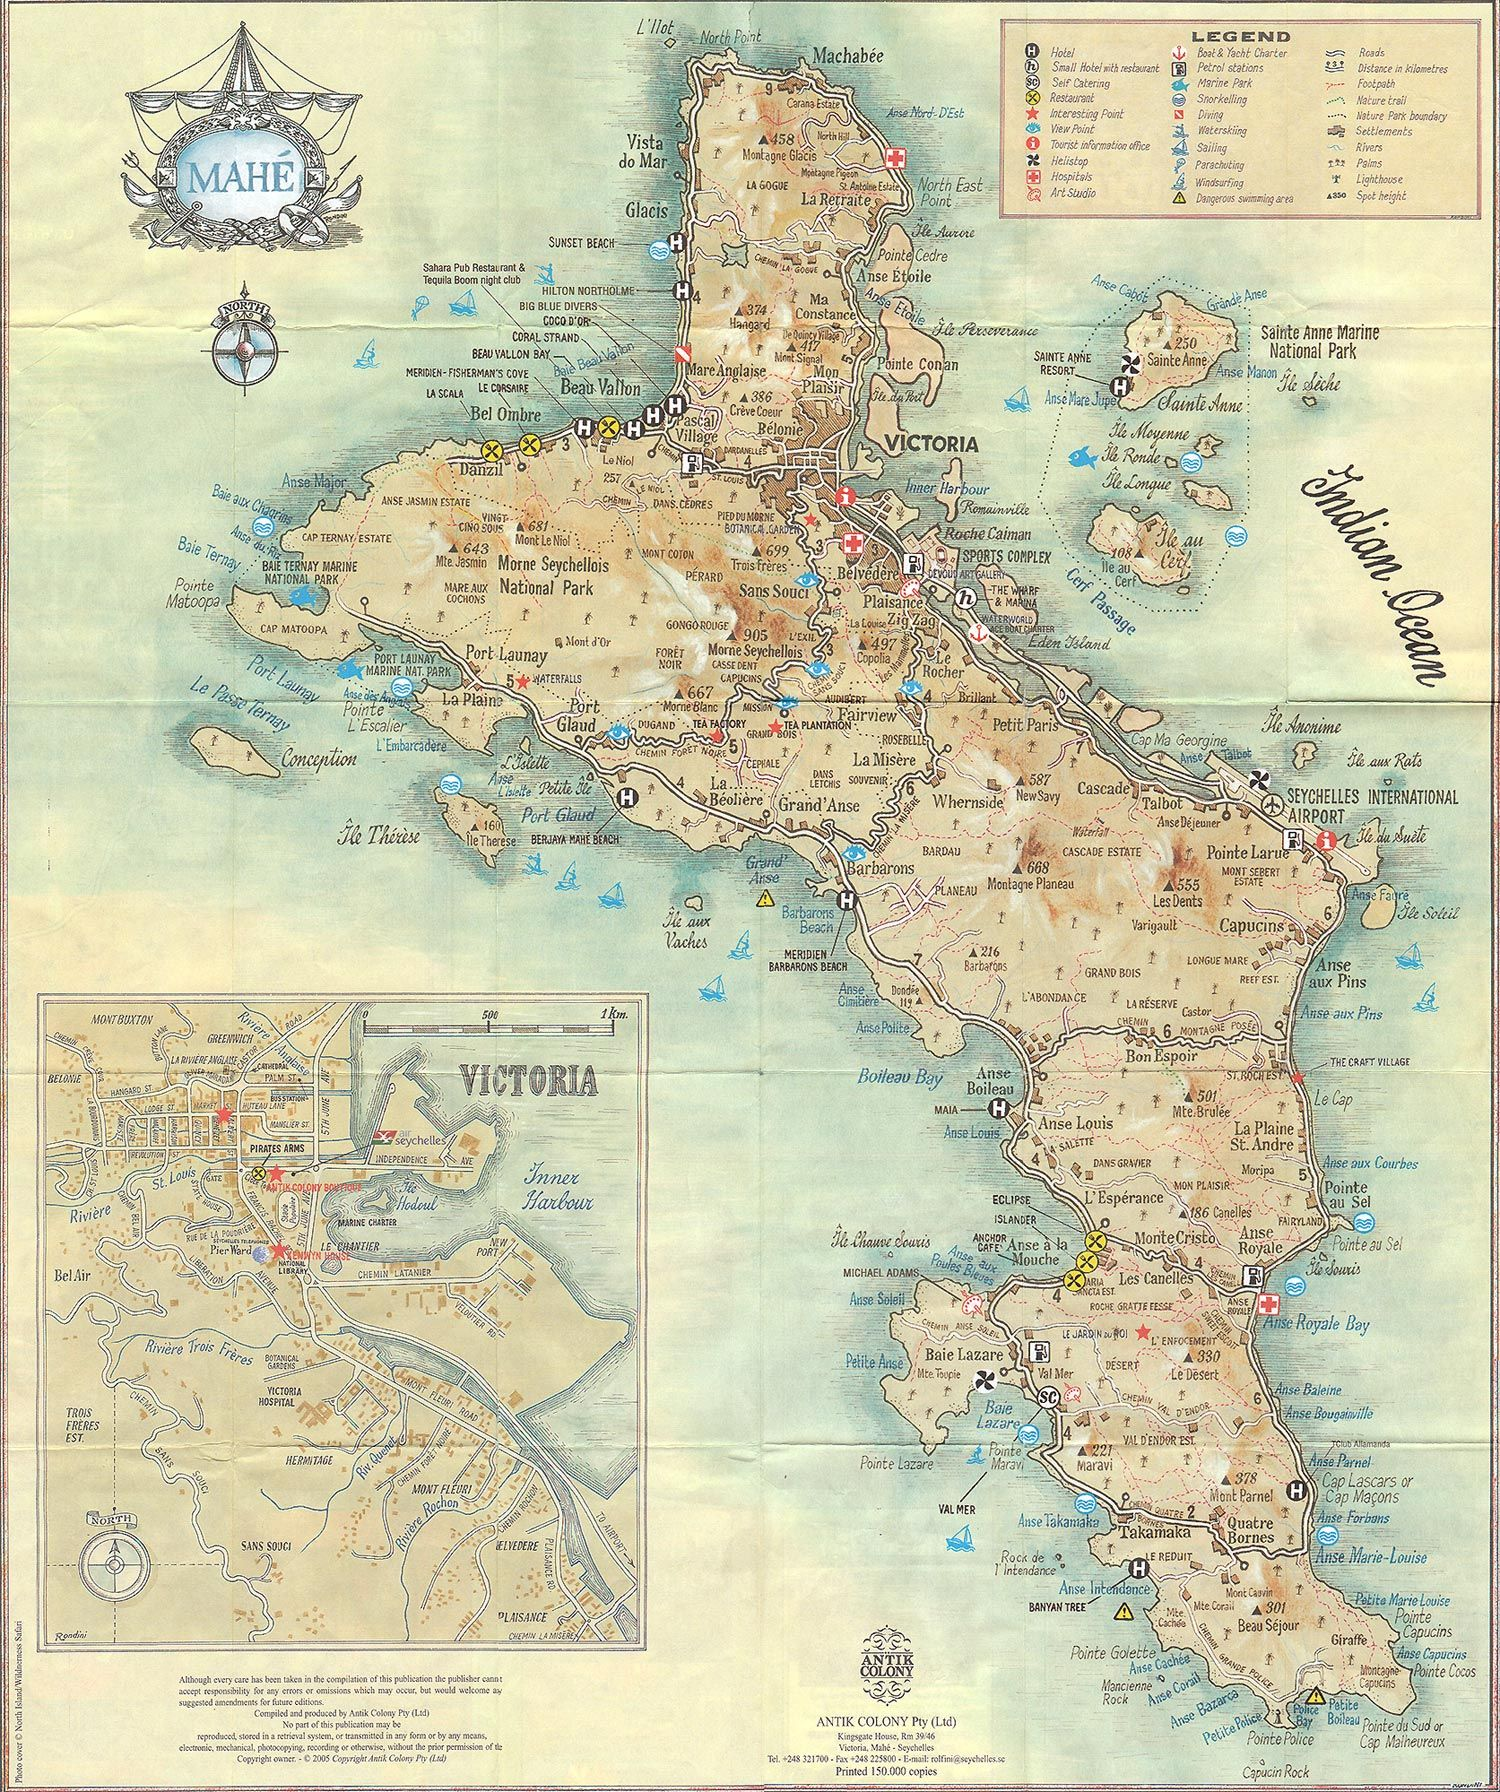 Mahe Island Seychelles By Antik Colony Map Seychelles Antike